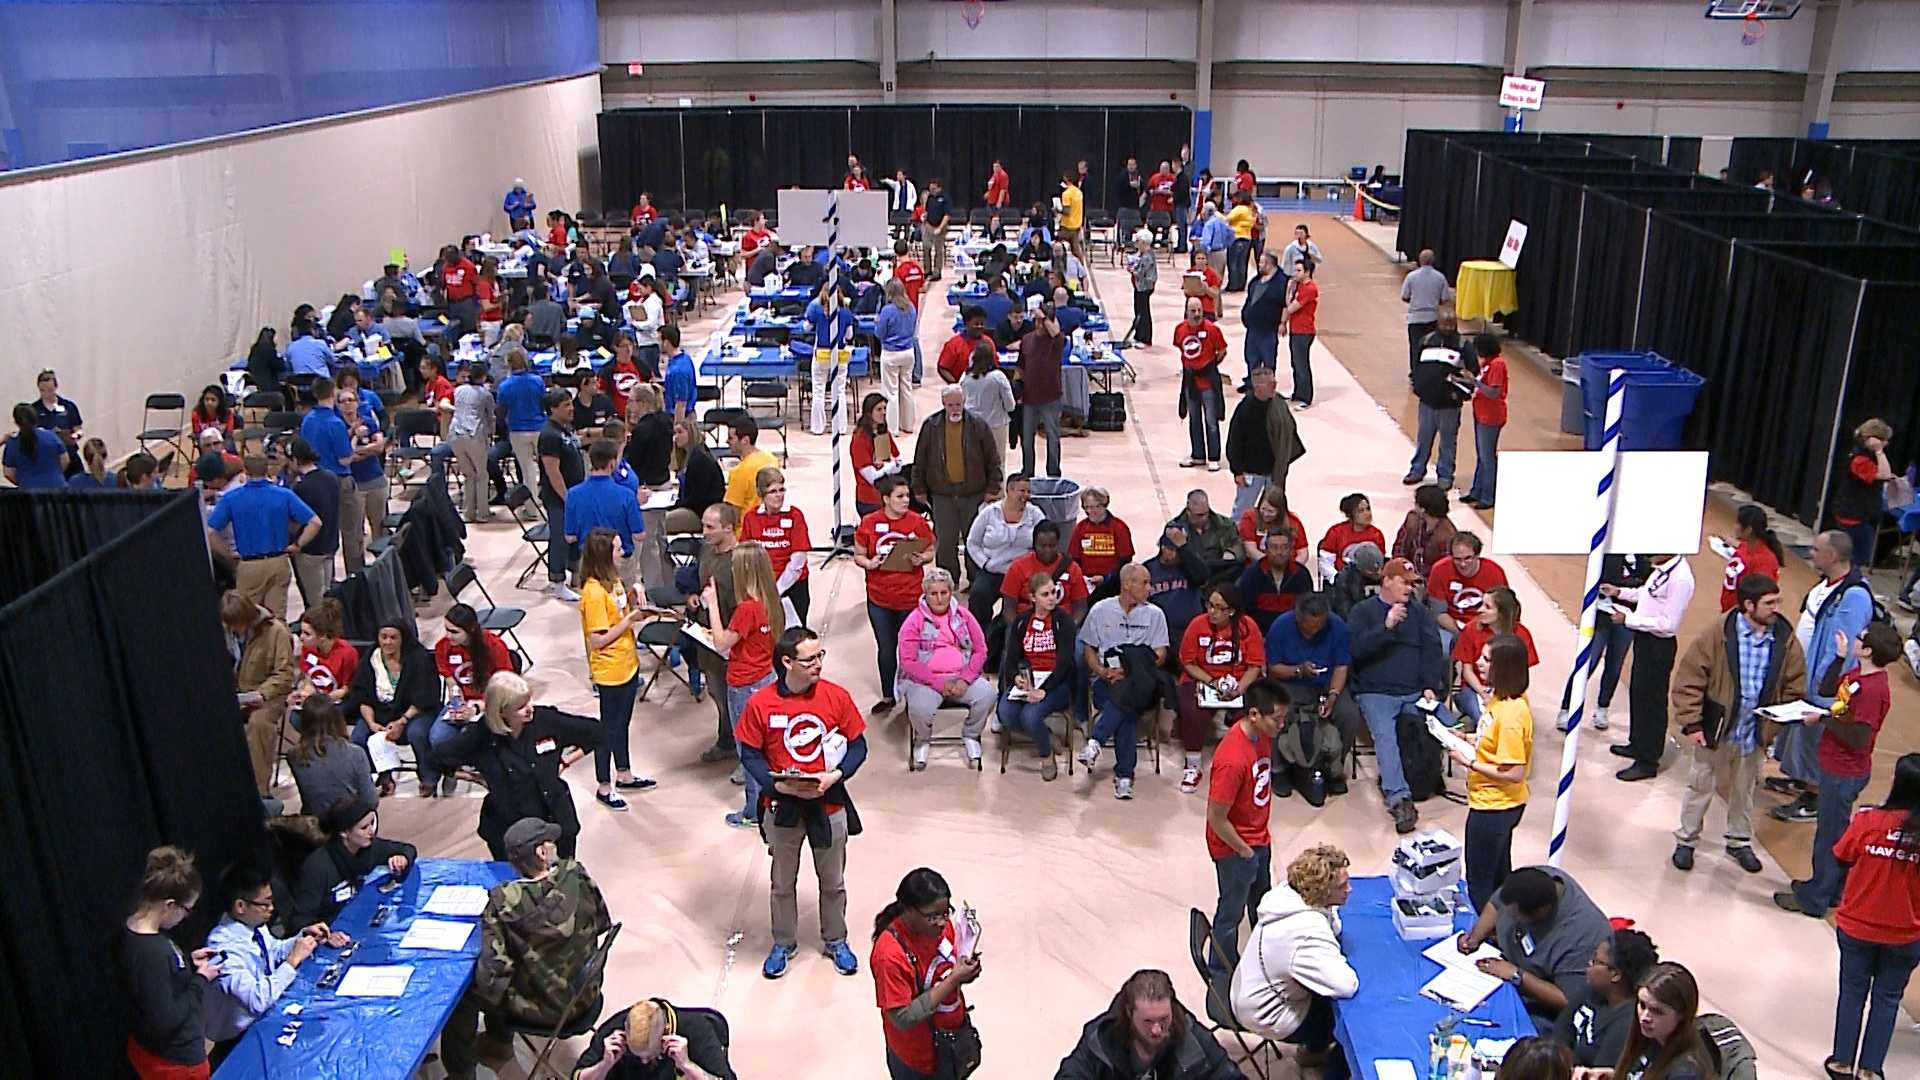 A resource fair at Creighton University on Friday offered a hand up to struggling Omaha residents.